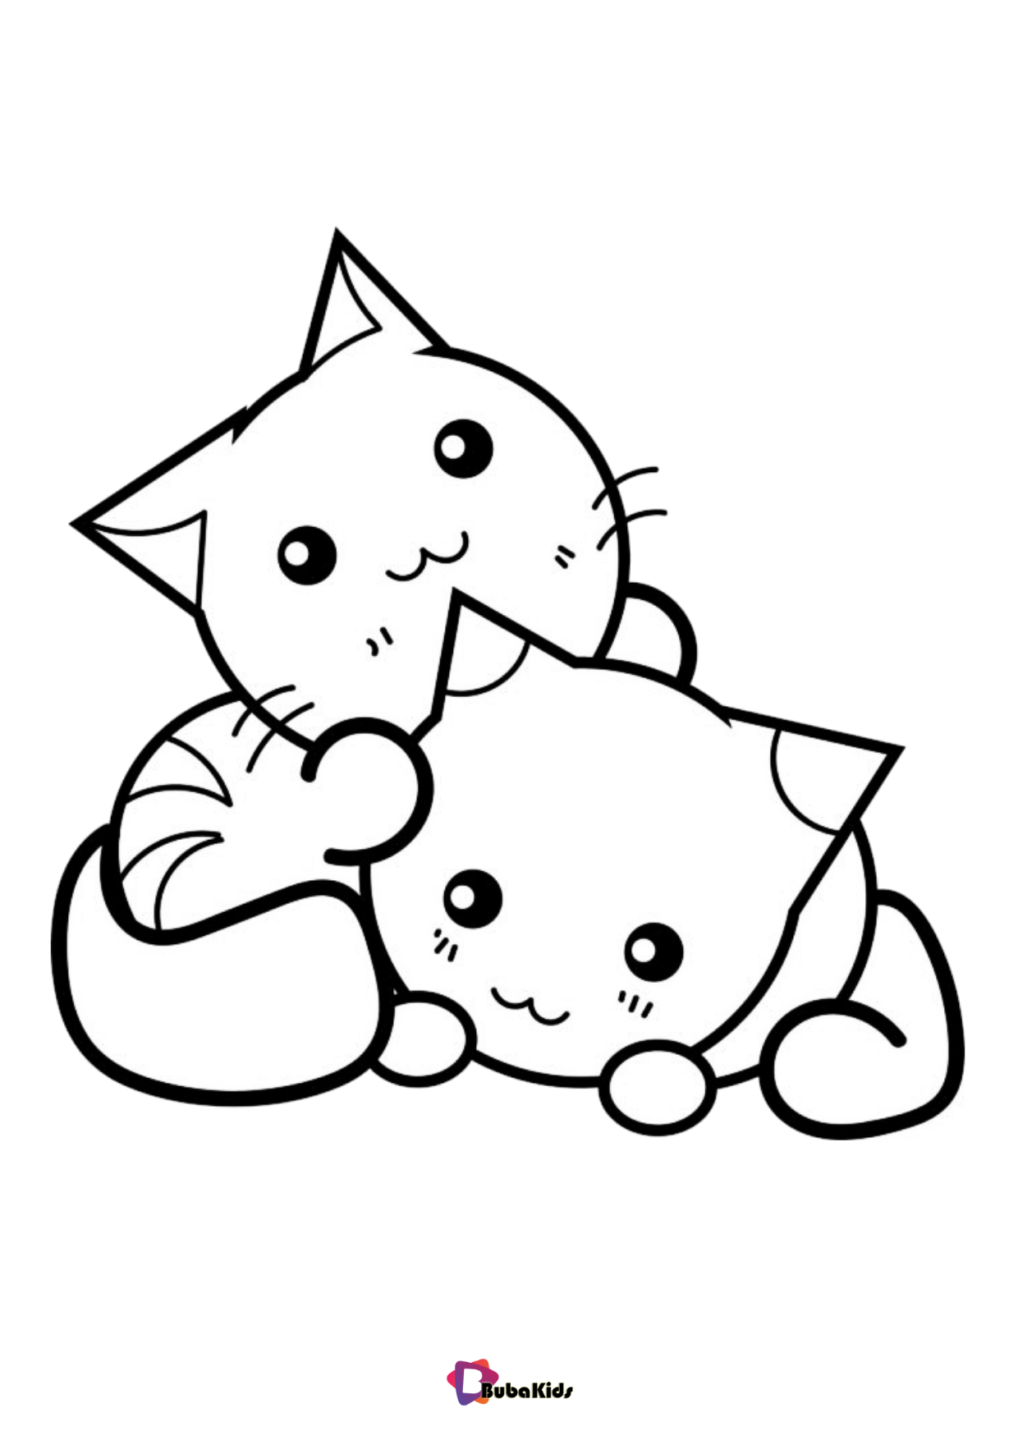 cute kittens coloring pages get this baby kitten coloring pages 84624 kittens pages coloring cute